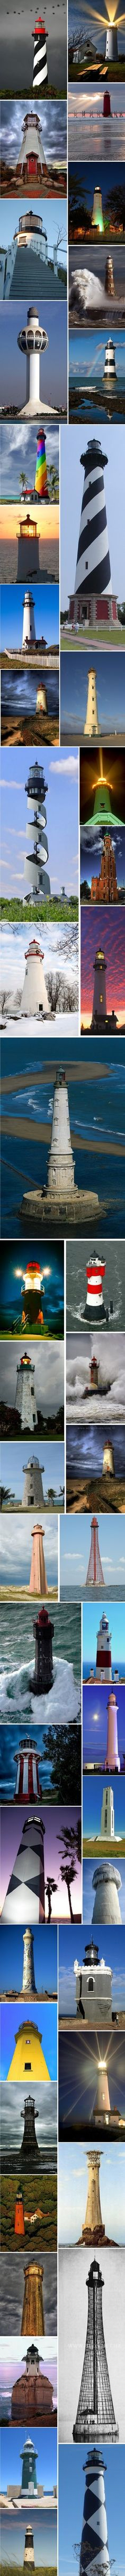 Amazing, useful, creative Lighthouses!